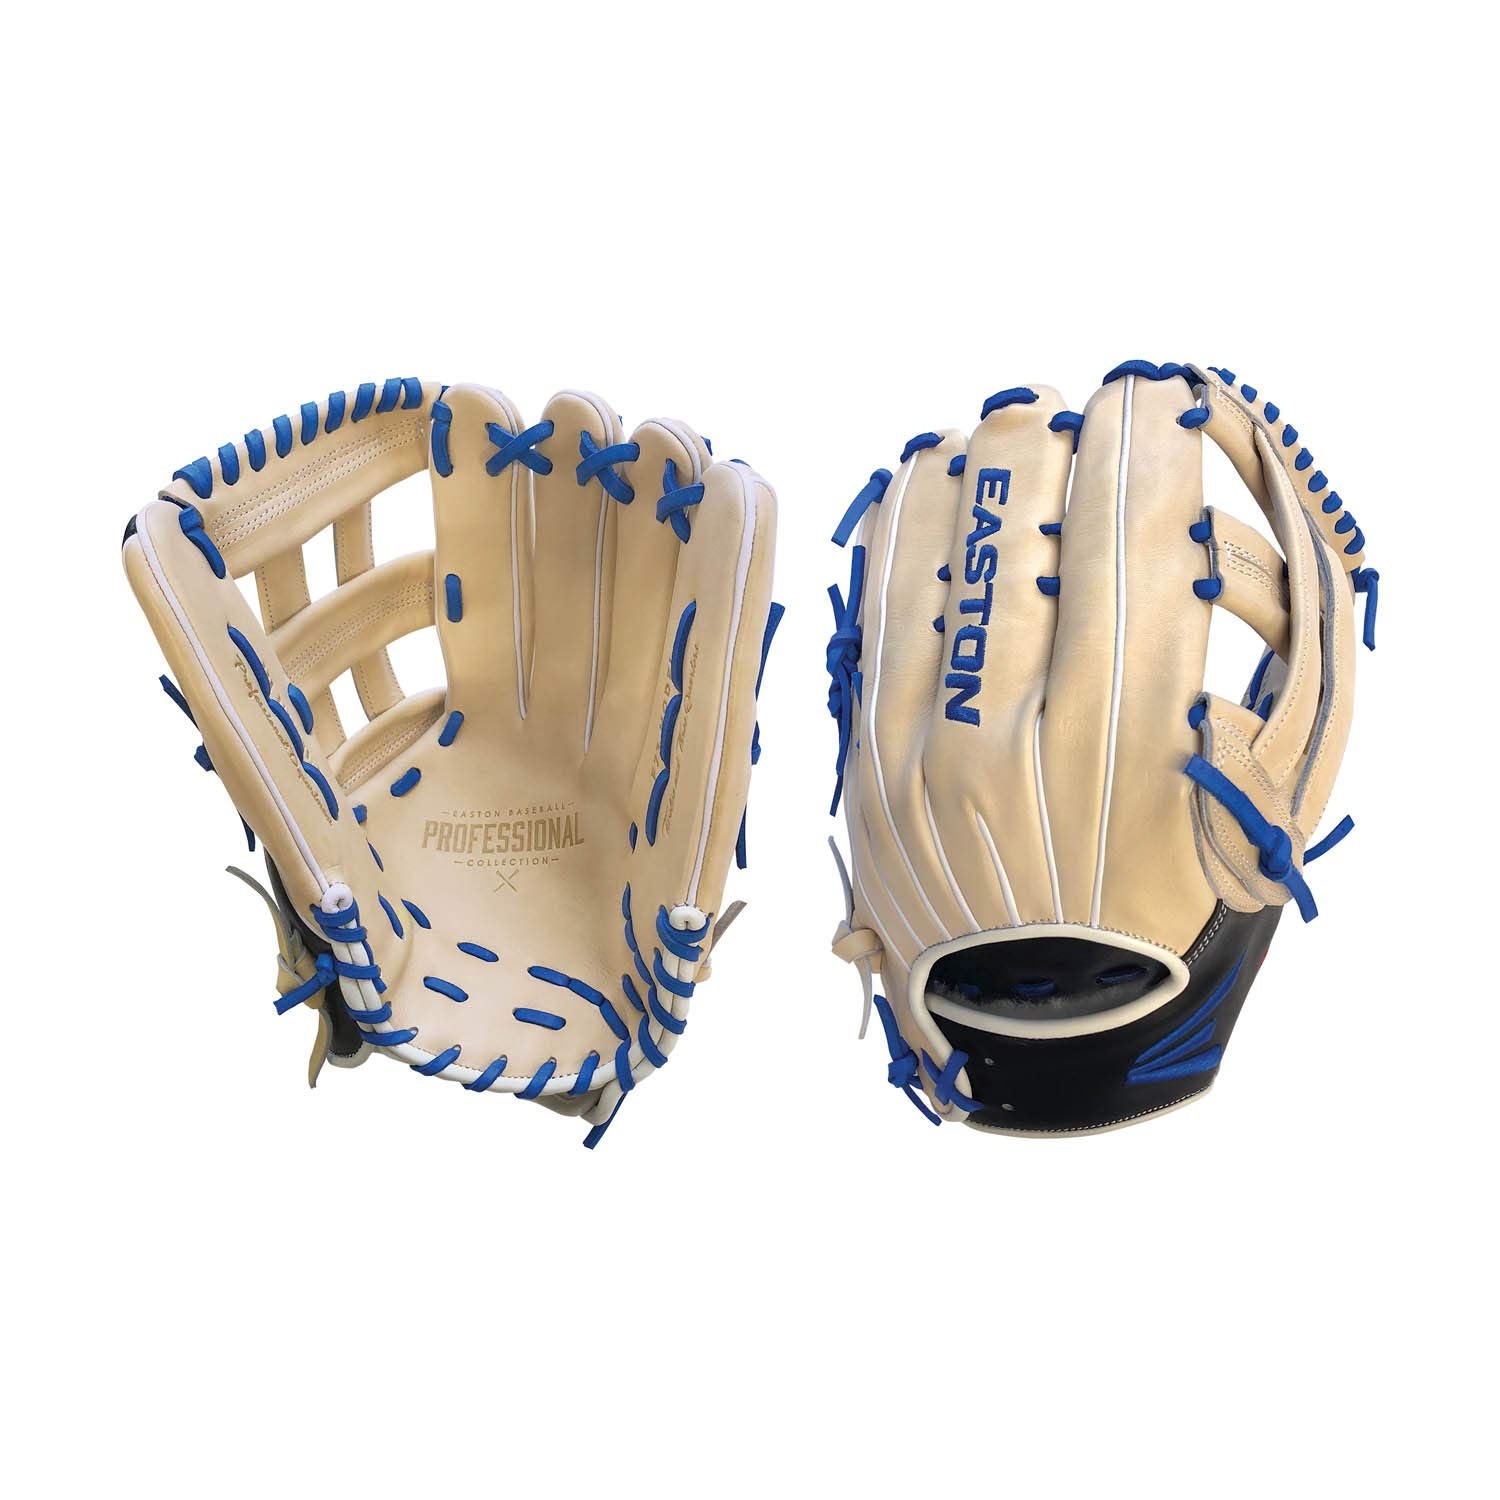 Easton Pro Collection ゲームスペック 野球グローブ B07FMQRMLQ  Kevin Pillar Game Spec